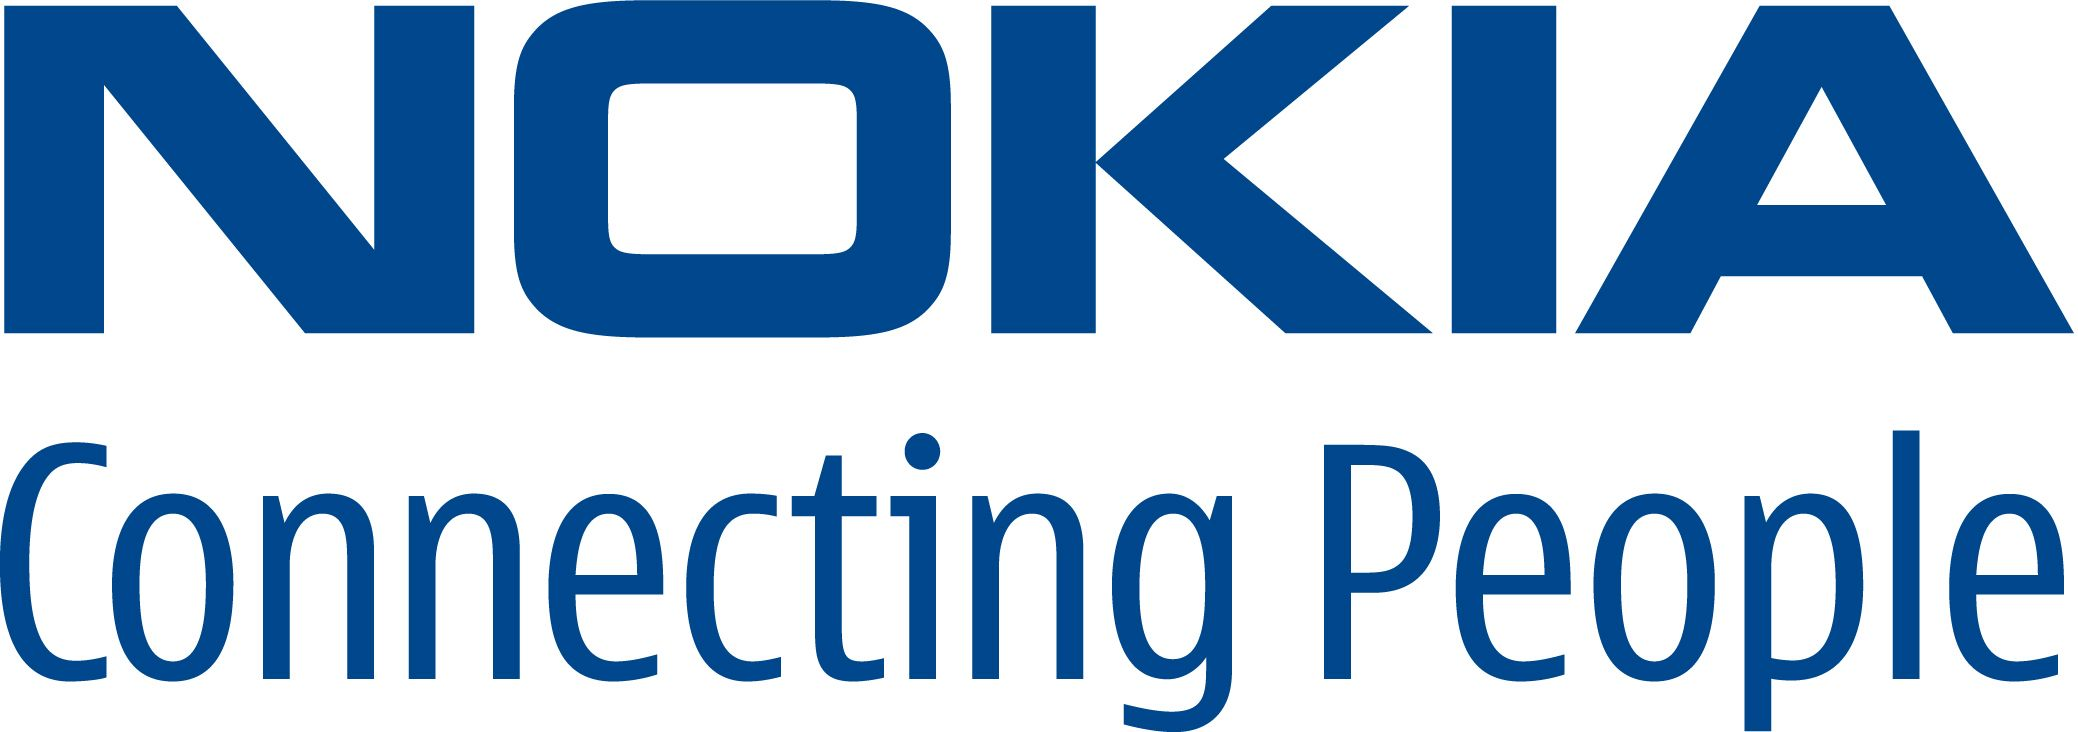 Nokia Co. logo